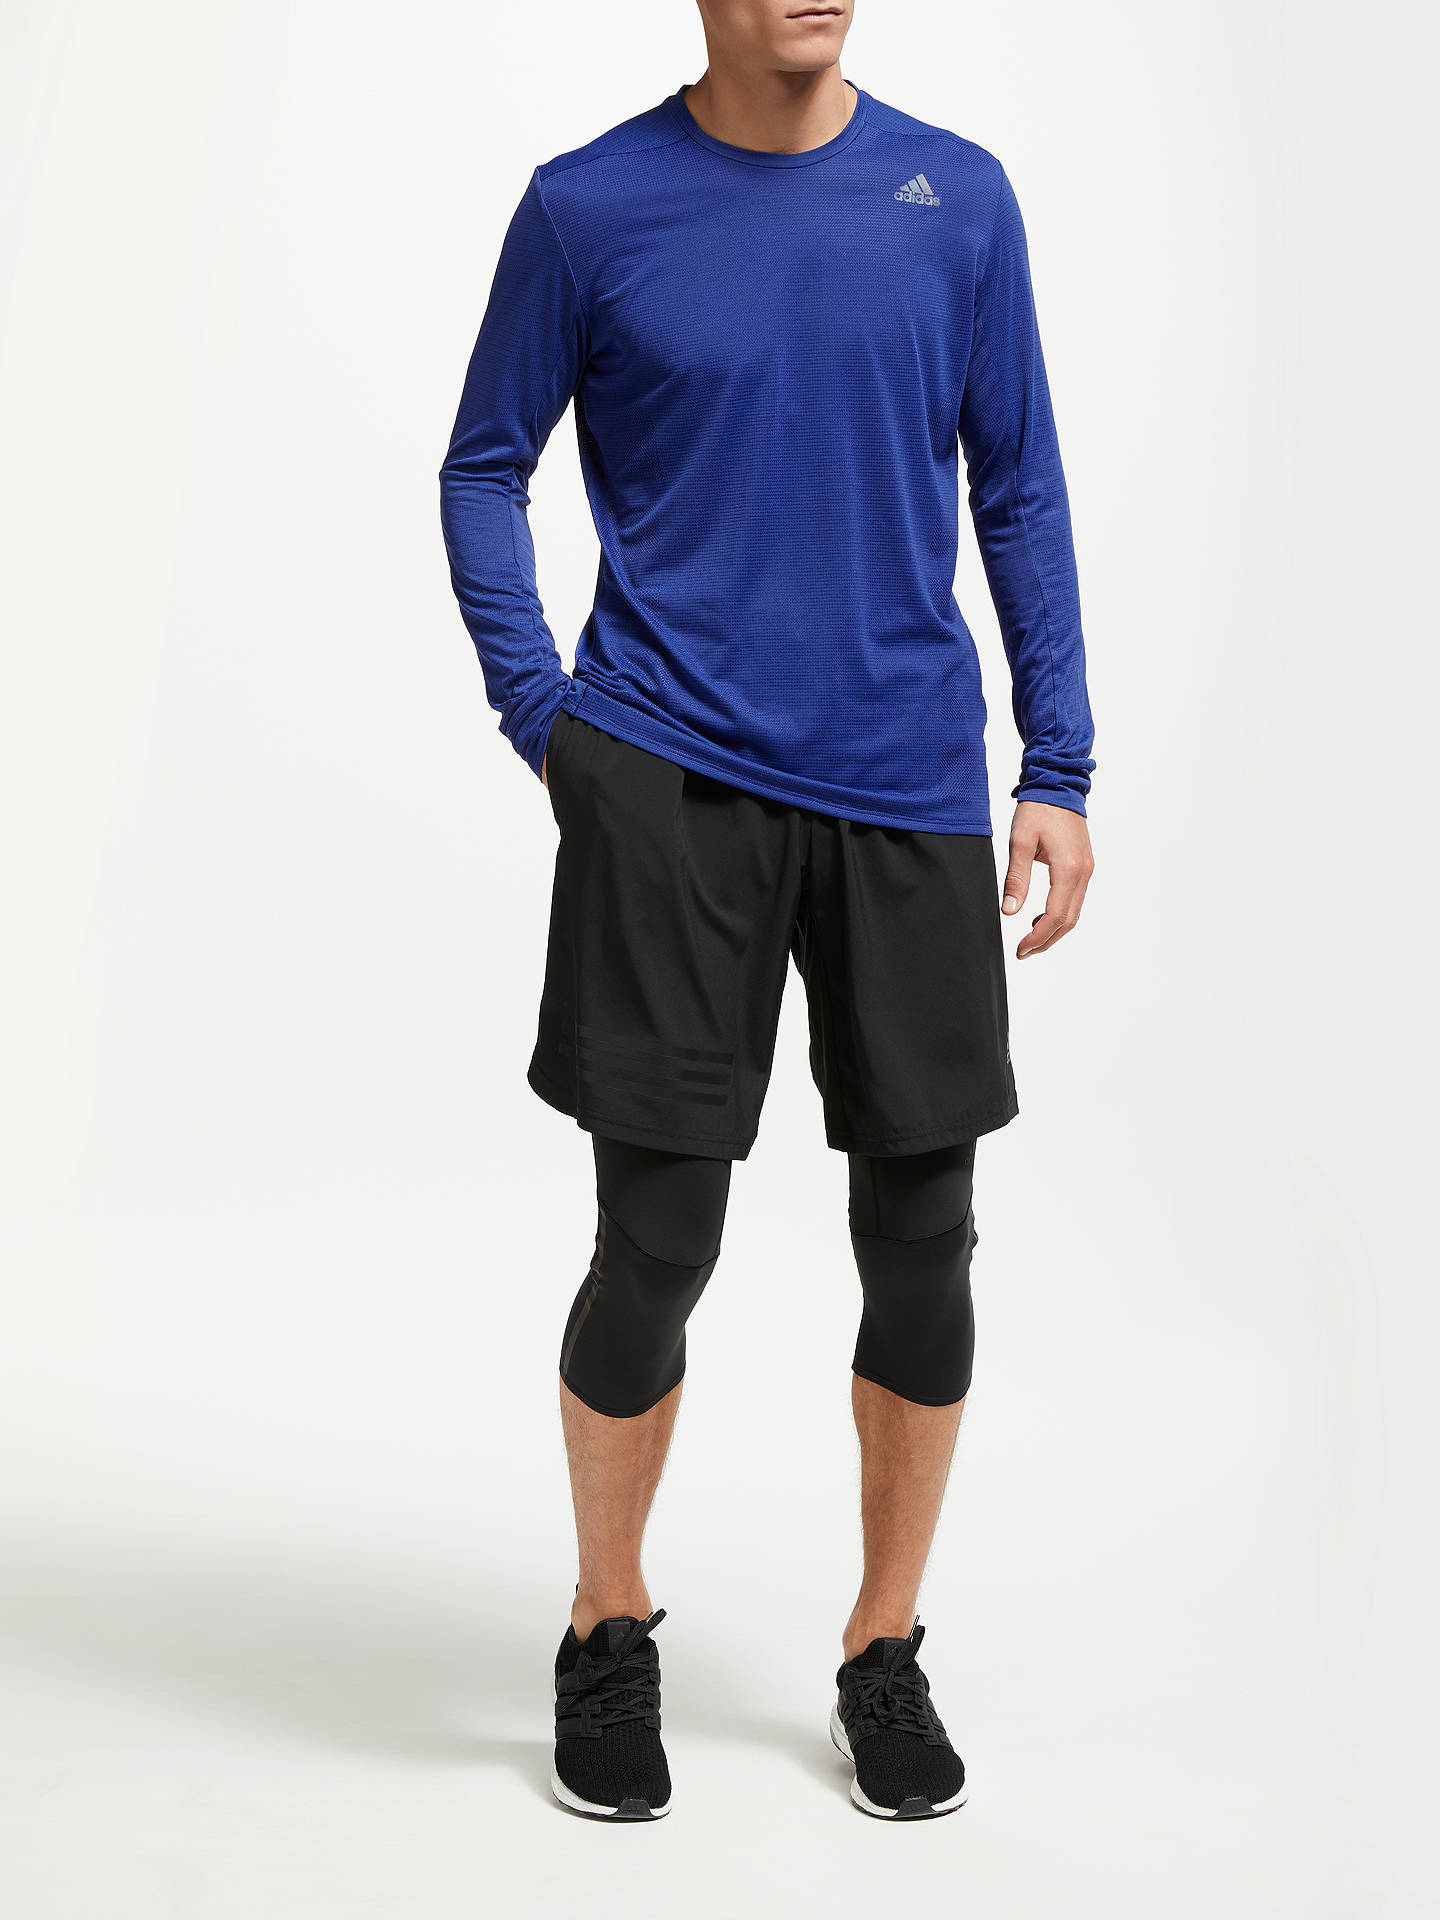 Buyadidas Supernova Long Sleeve Running Top, Blue, S Online at johnlewis.com